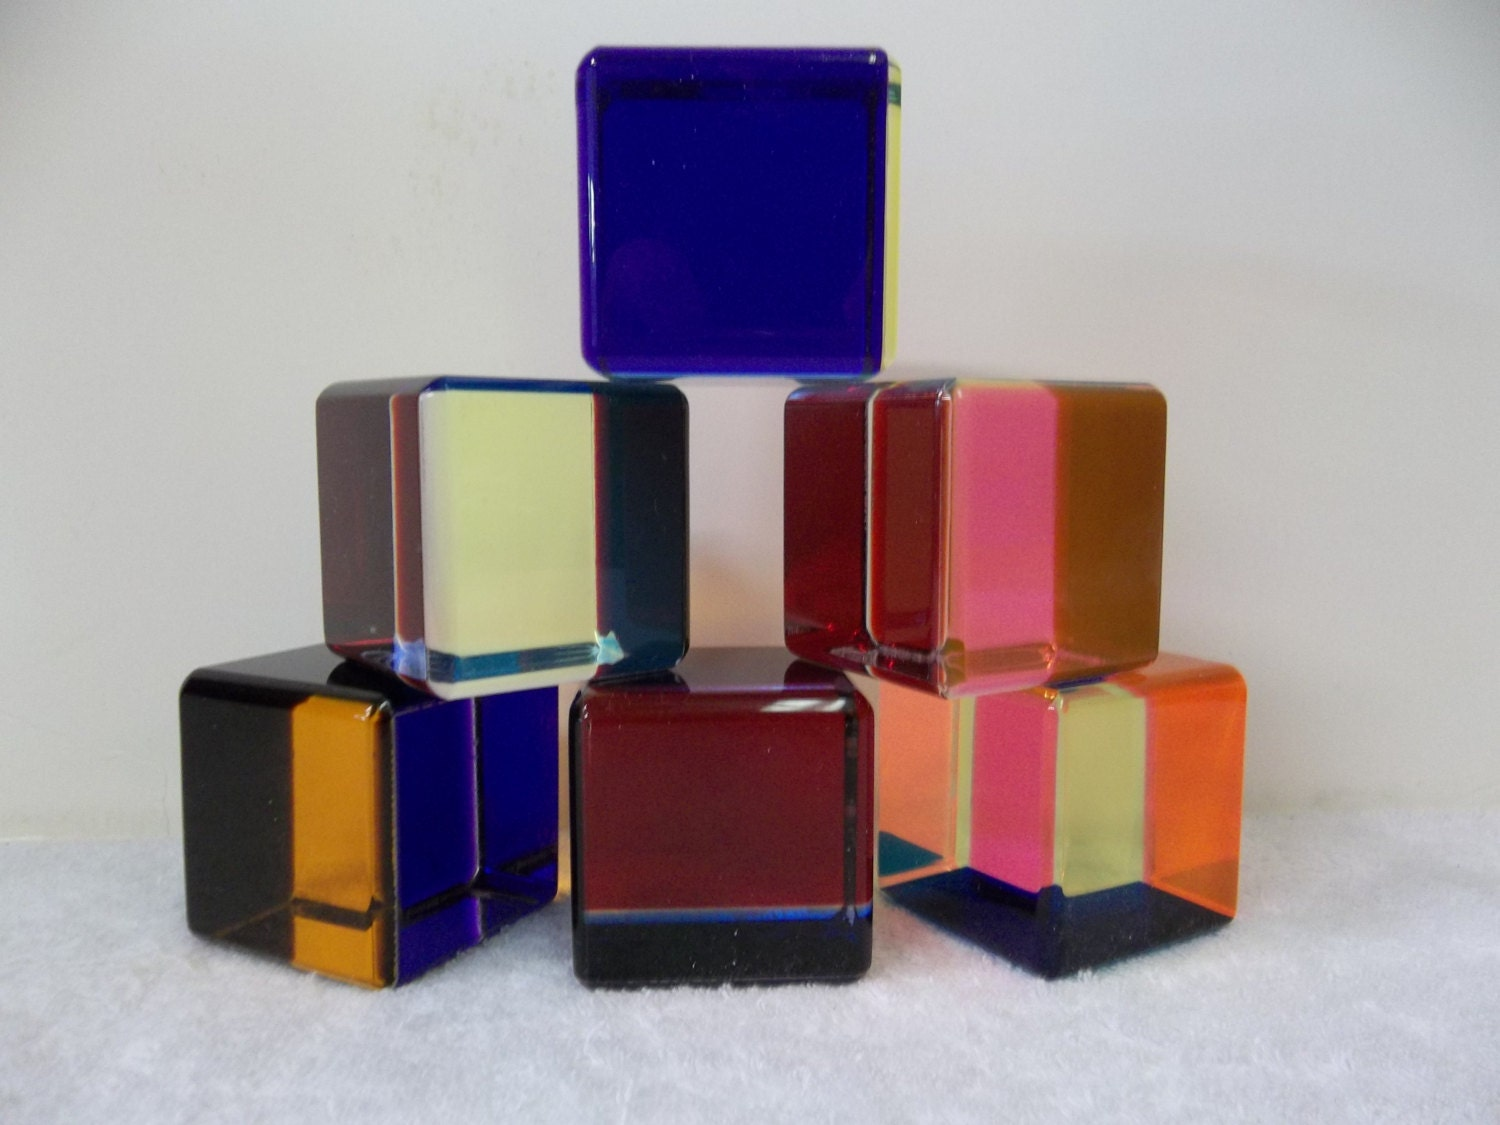 SIX Vintage Lucite Cast Acrylic Mid Century Modern Vasa Mihich Cubes 578 - ModernArtObsessed